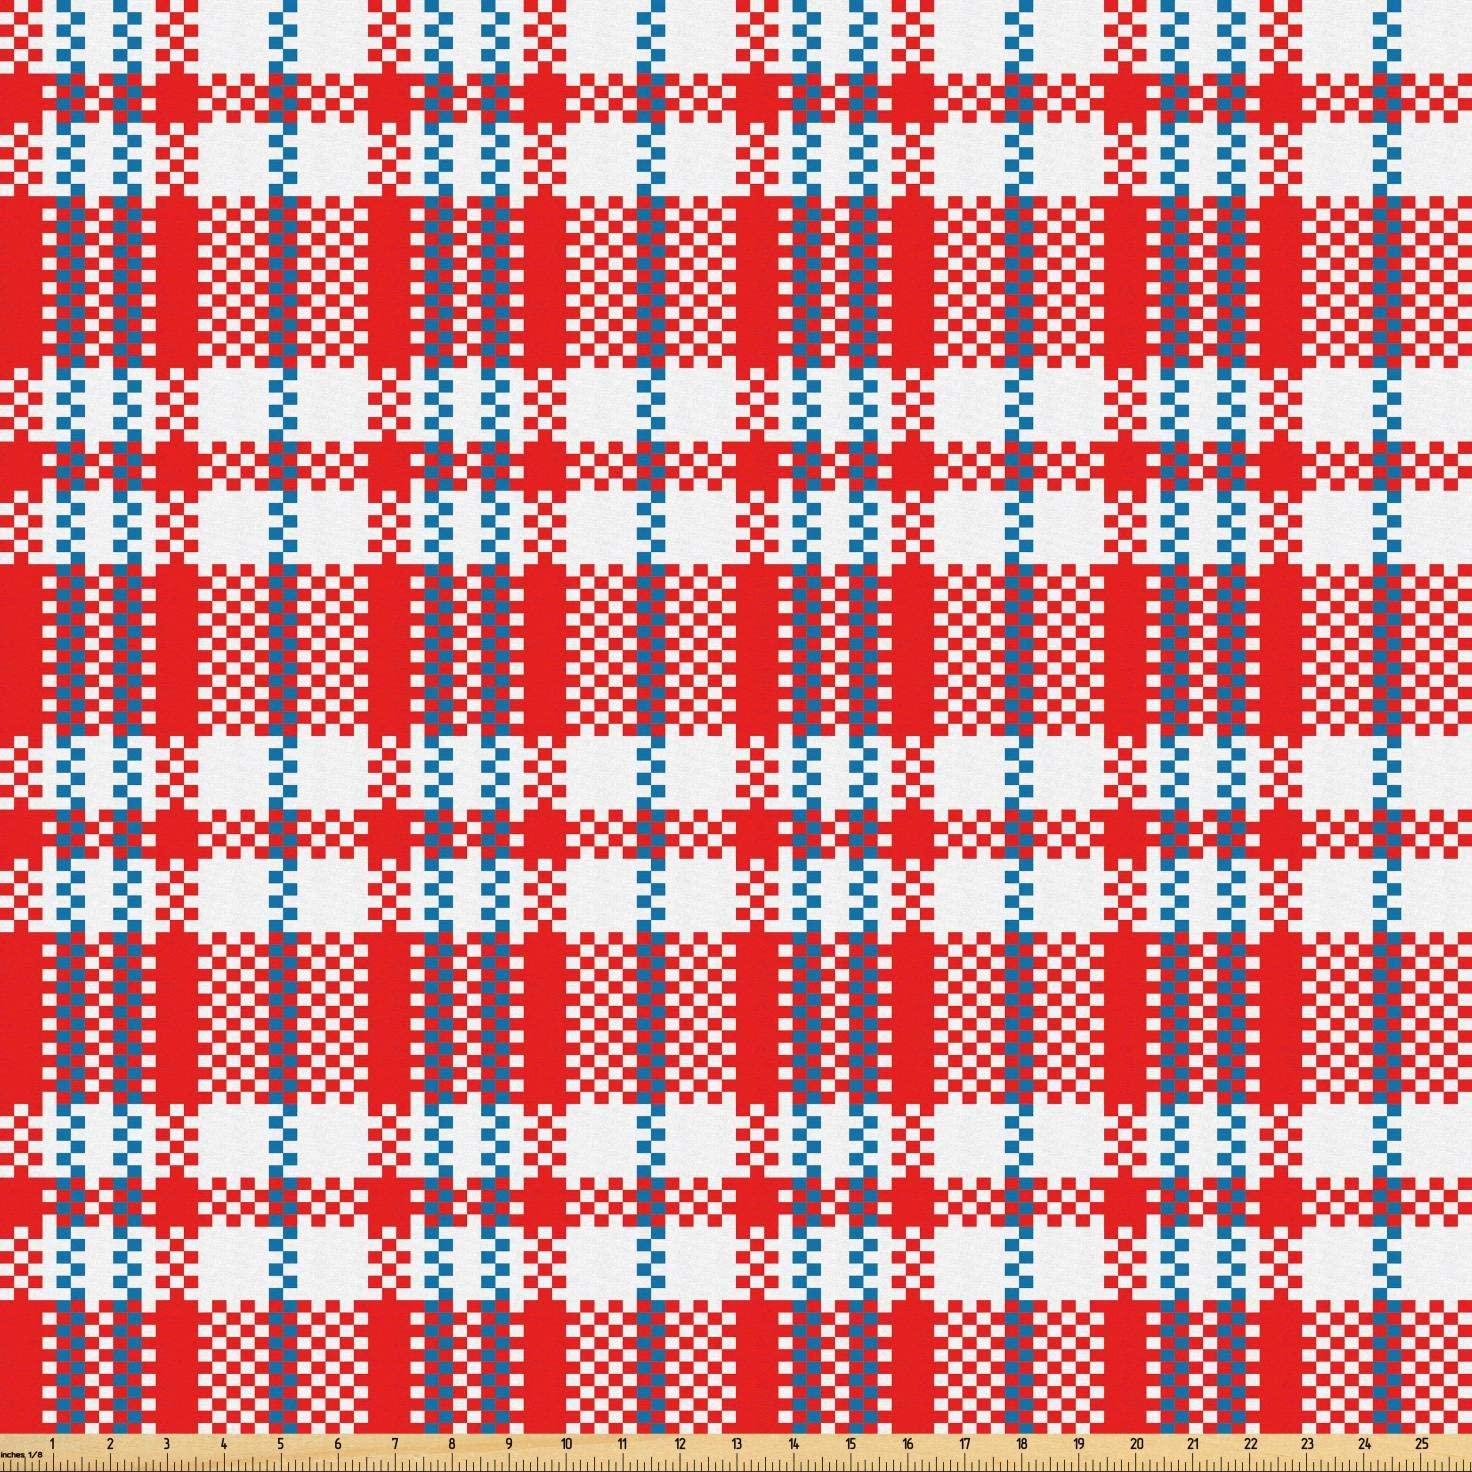 Lunarable Plaid Fabric by The Yard, Colorful Chinese Checkered Pattern Quilt-Like Design Oriental, Microfiber Fabric for Arts and Crafts Textiles & Decor, 2 Yards, Vermilion Petrol Blue and White